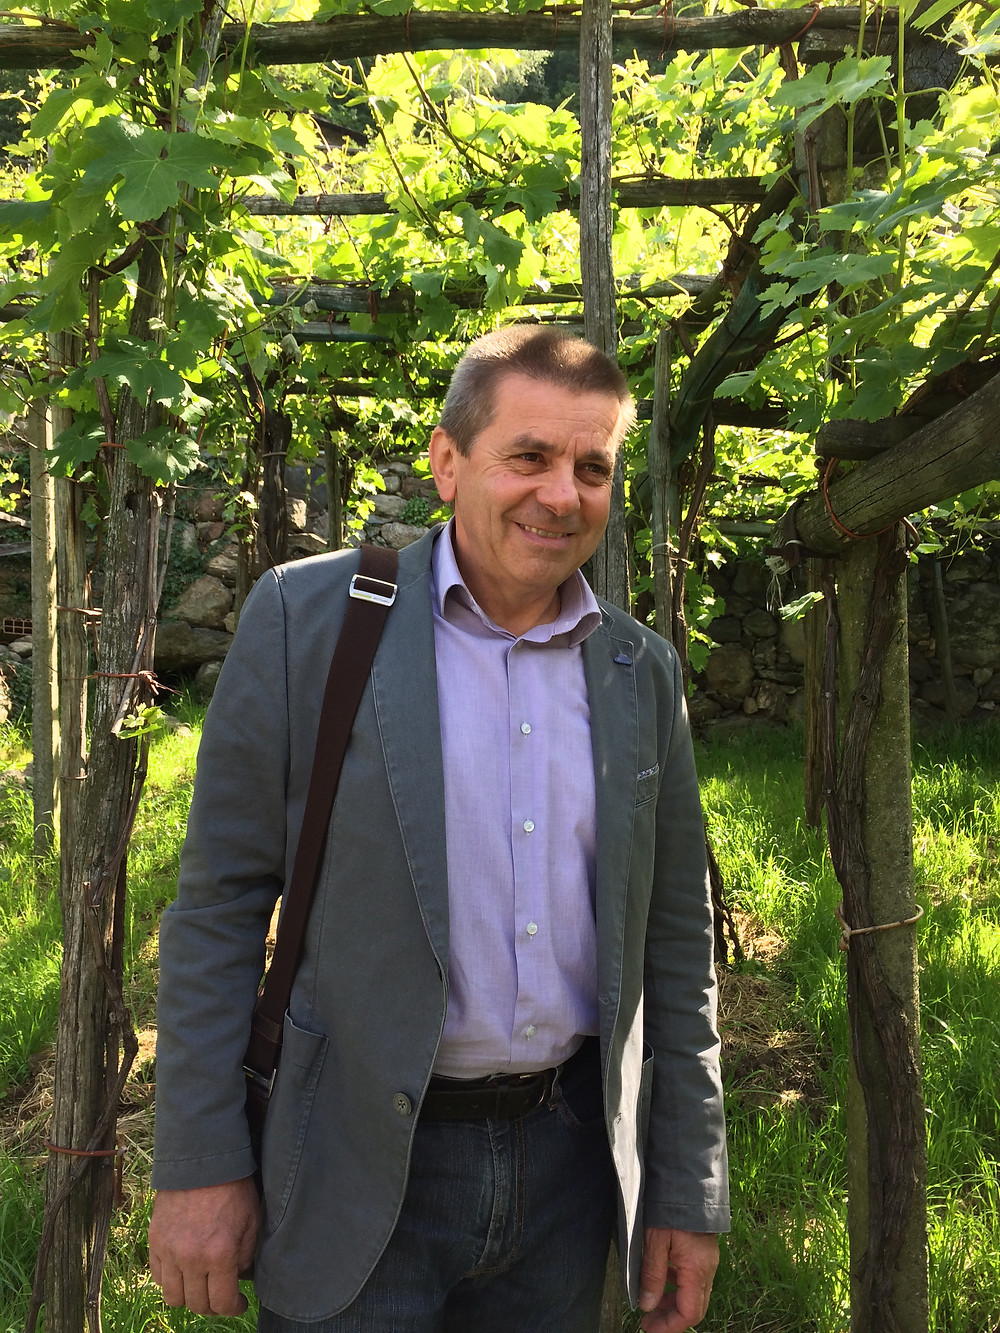 Maurizio Forgia, the man in charge of wine-making in Carema